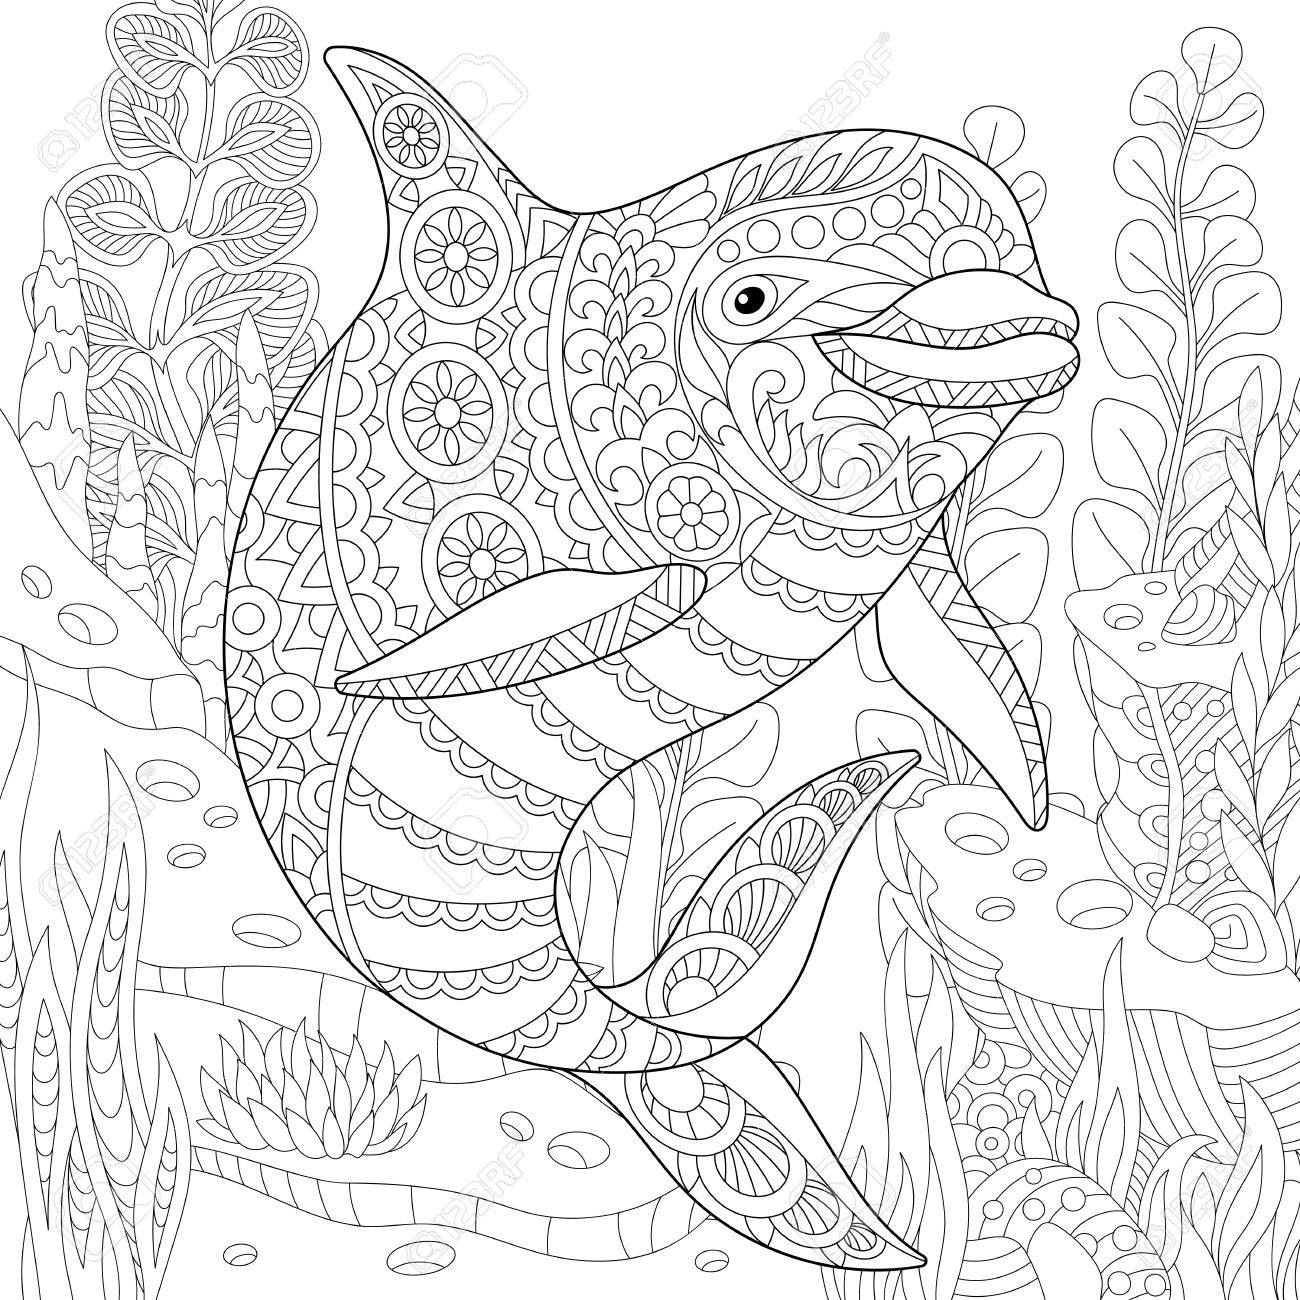 Stylized cute dolphin swimming among underwater seaweed. Freehand sketch for adult anti stress coloring book page with doodle and zentangle elements. - 72763239